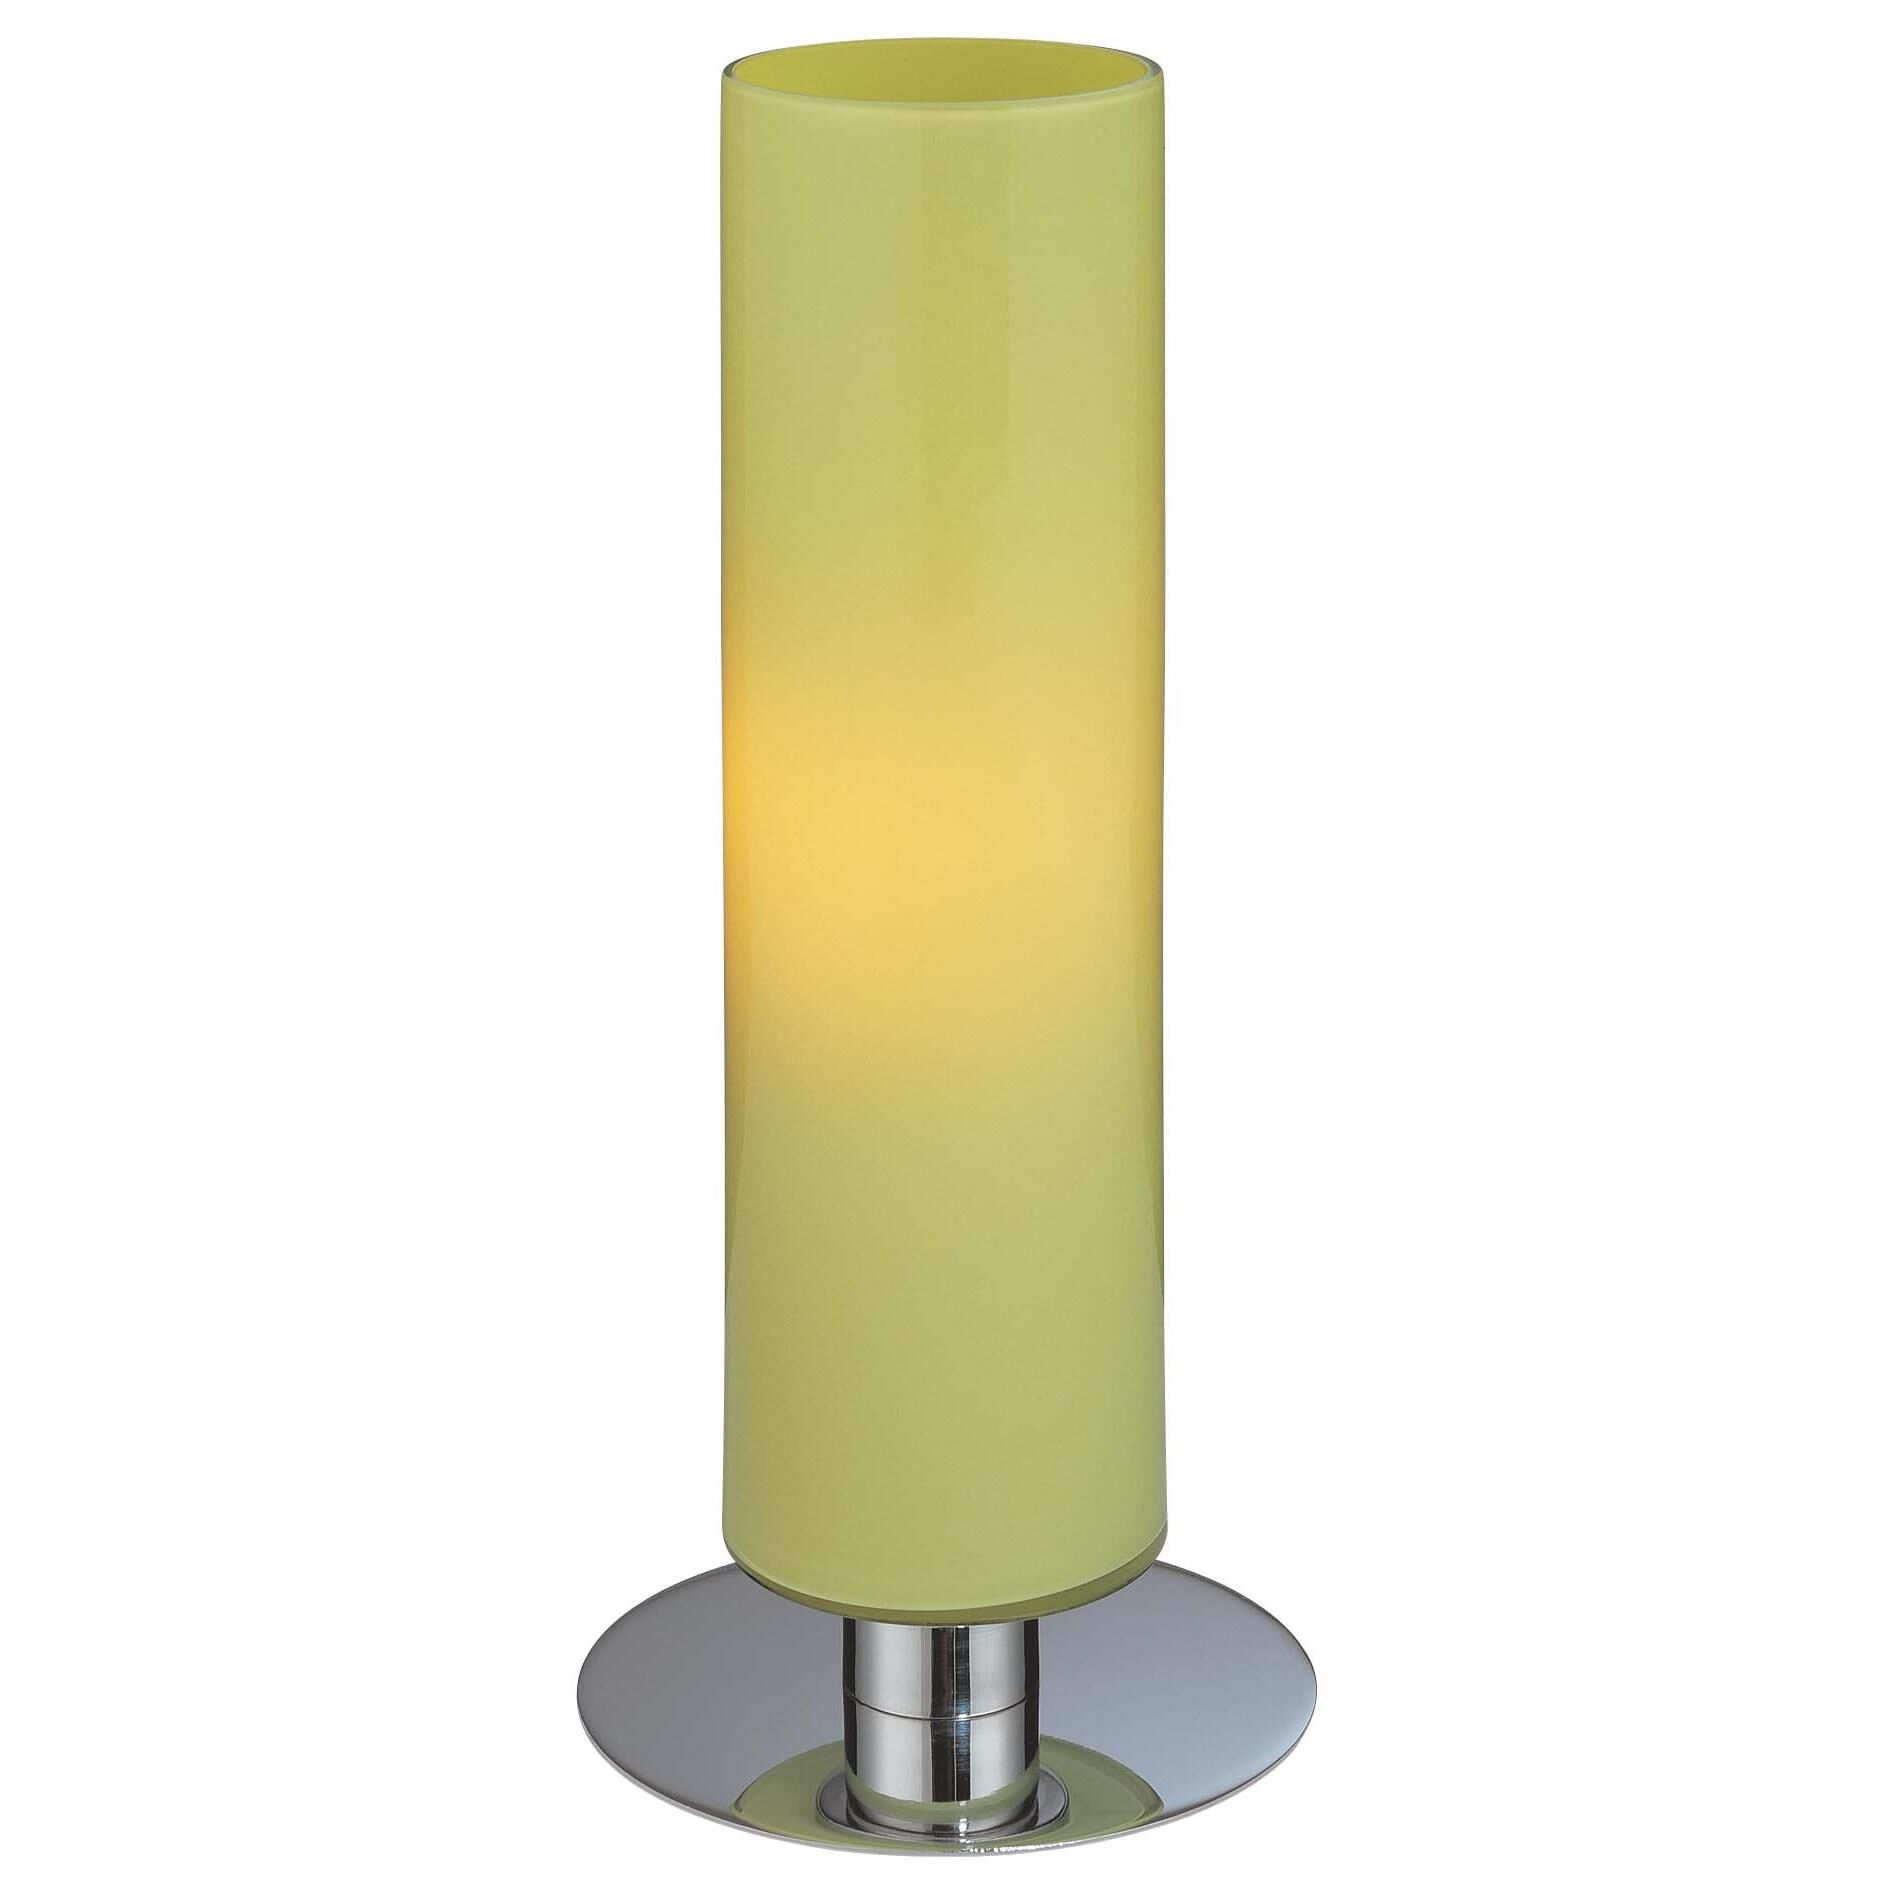 Kovacs Decorative Portables 13 Inch Accent Lamp Decorative Portables - P663-077 - Modern Contemporary